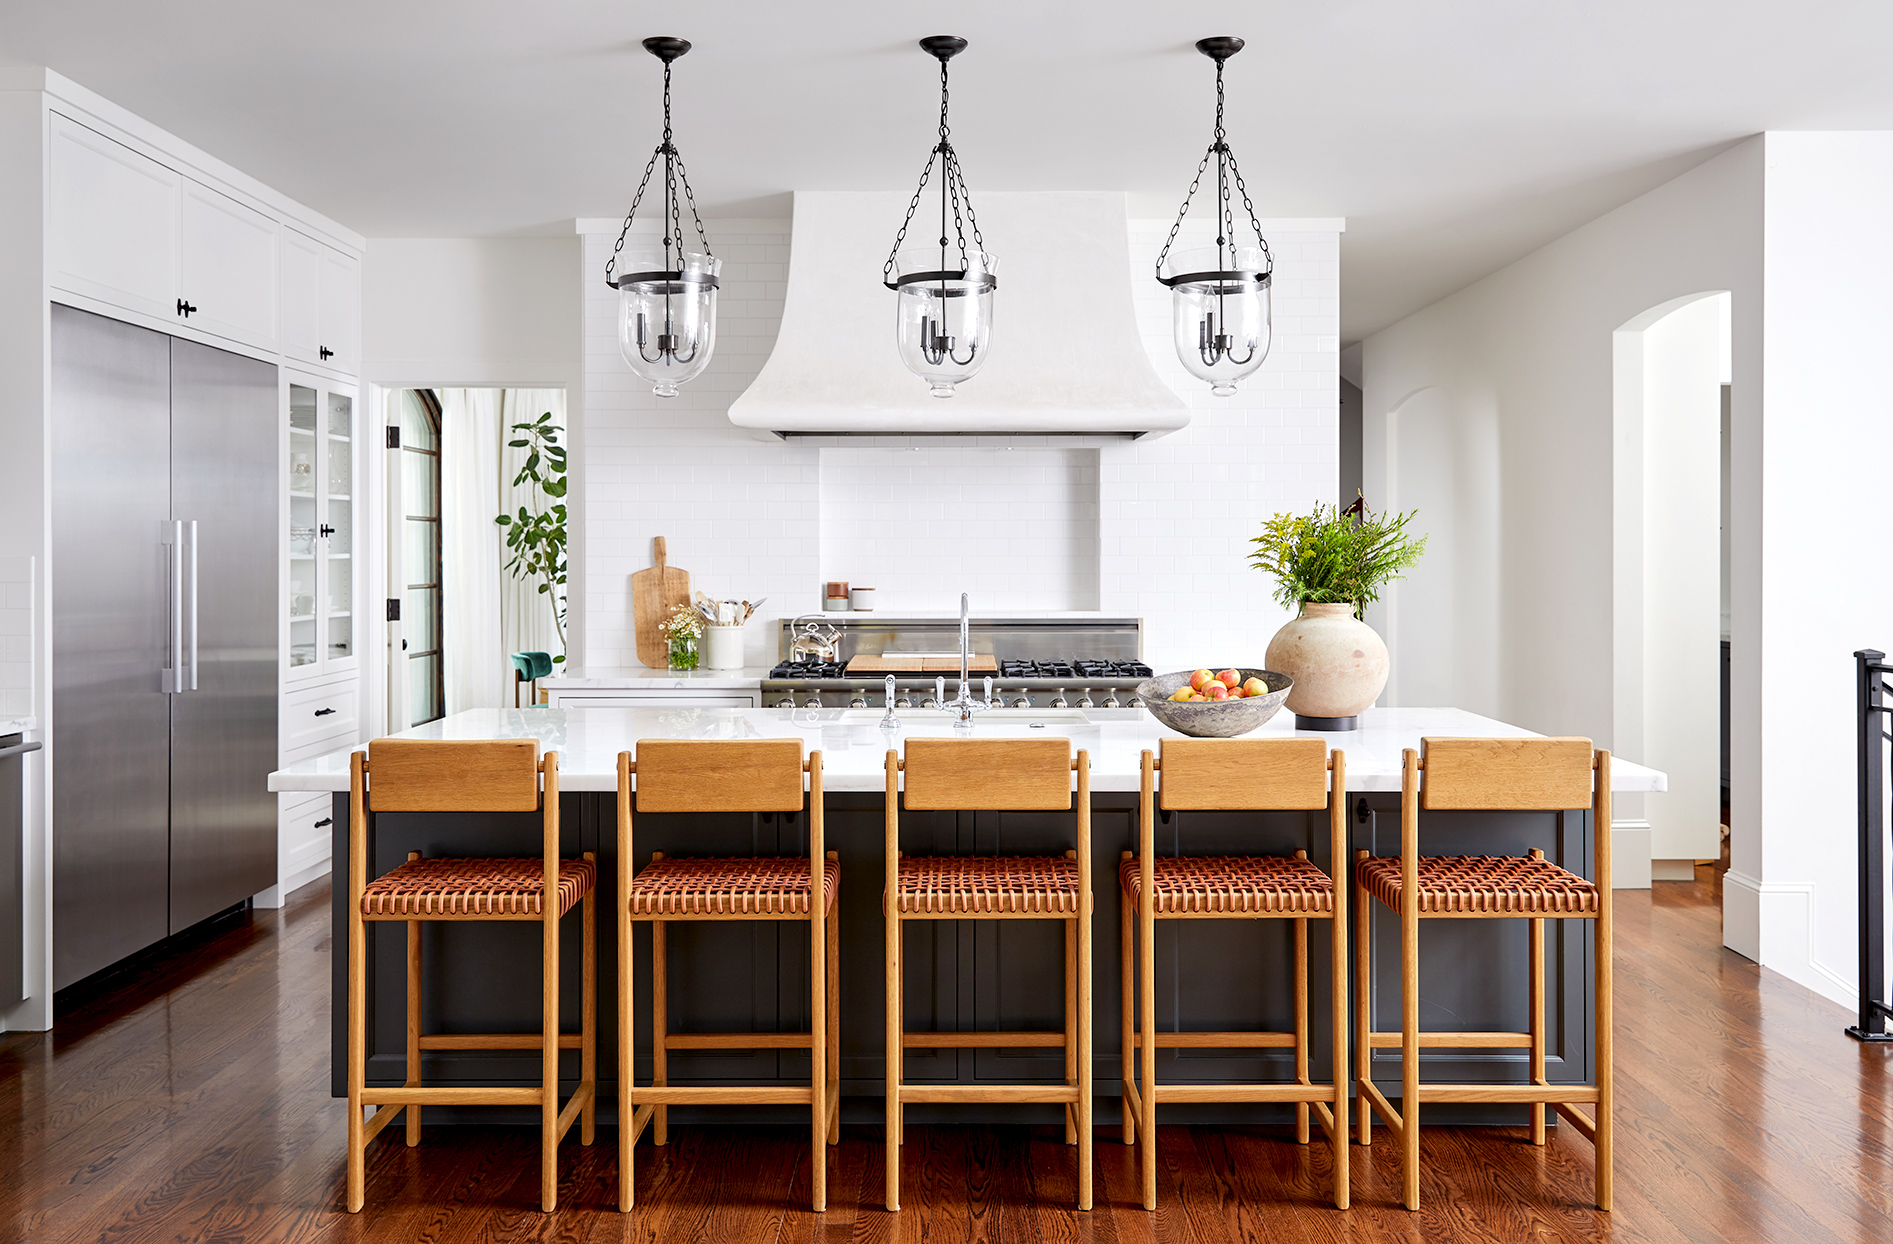 White kitchen with bar seating